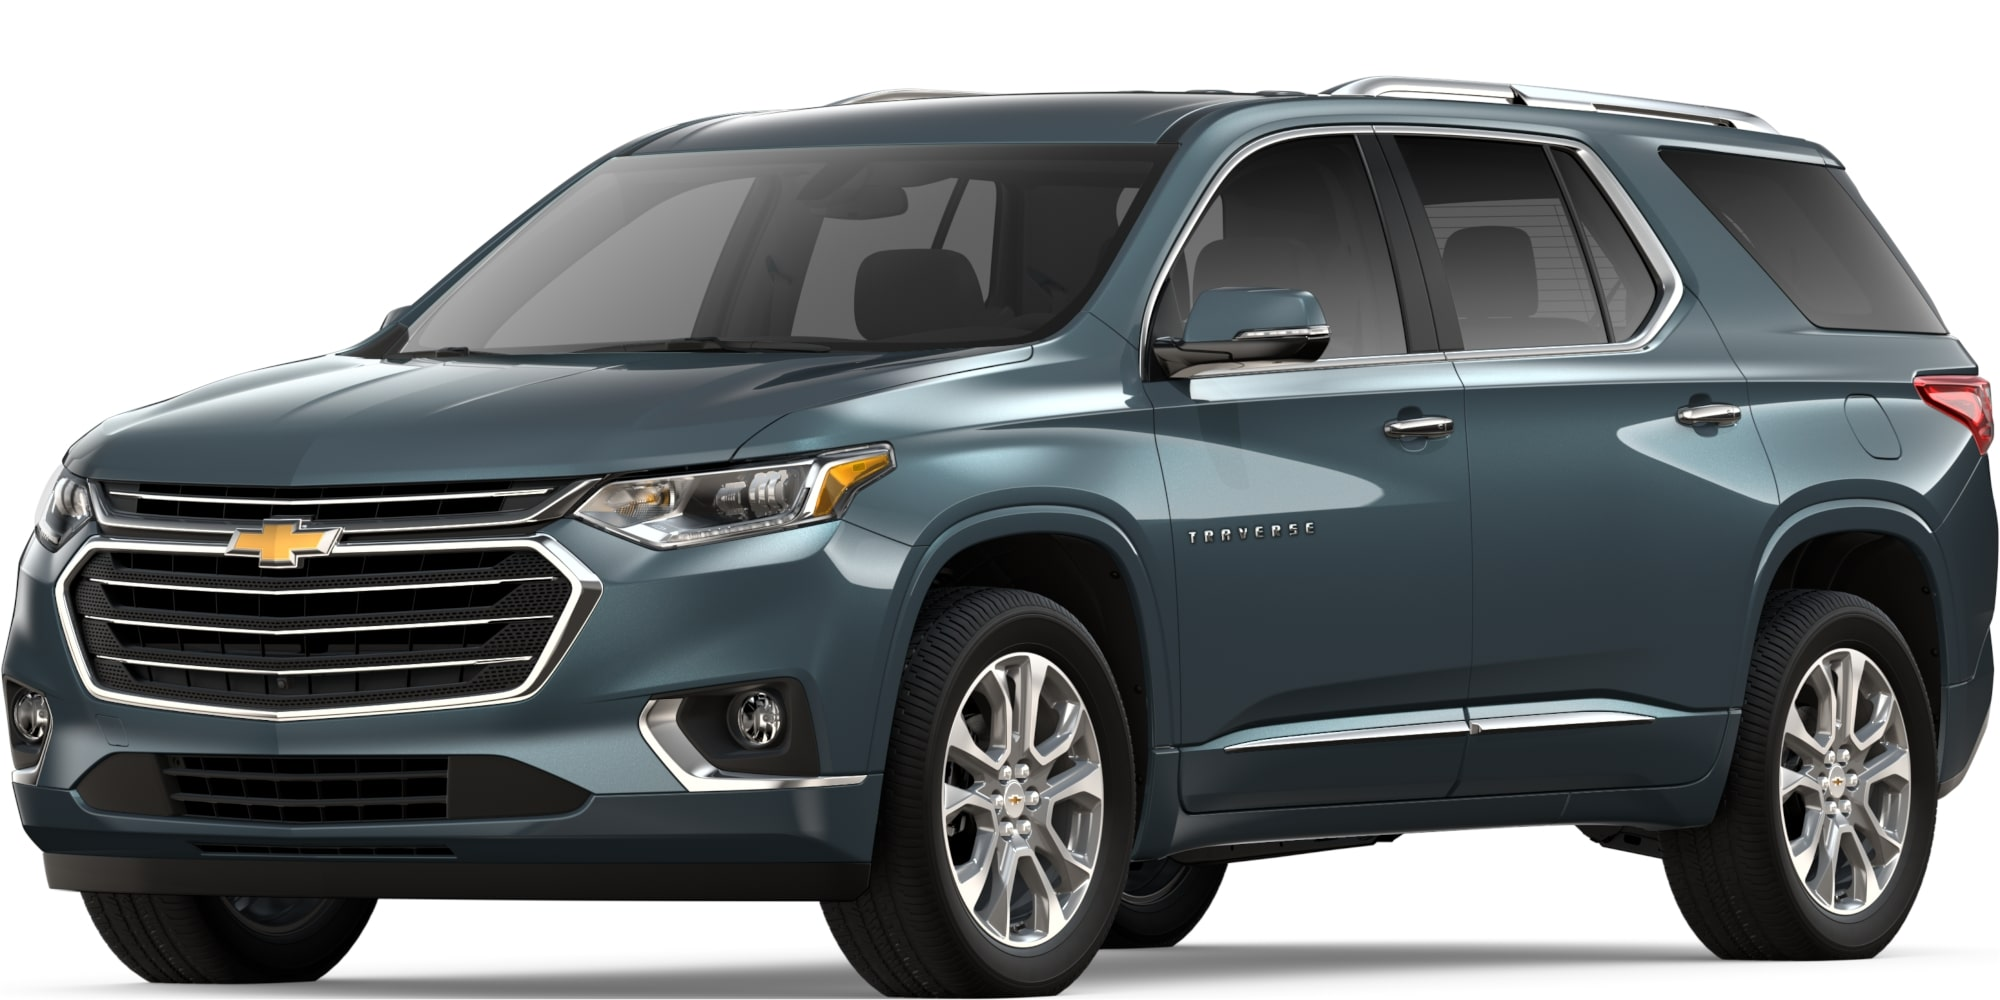 2010 Chevy Traverse Wiring Diagram For Seats Electrical 2012 2019 Mid Size Suv Crossover 3 Row 2005 Cobalt Stereo